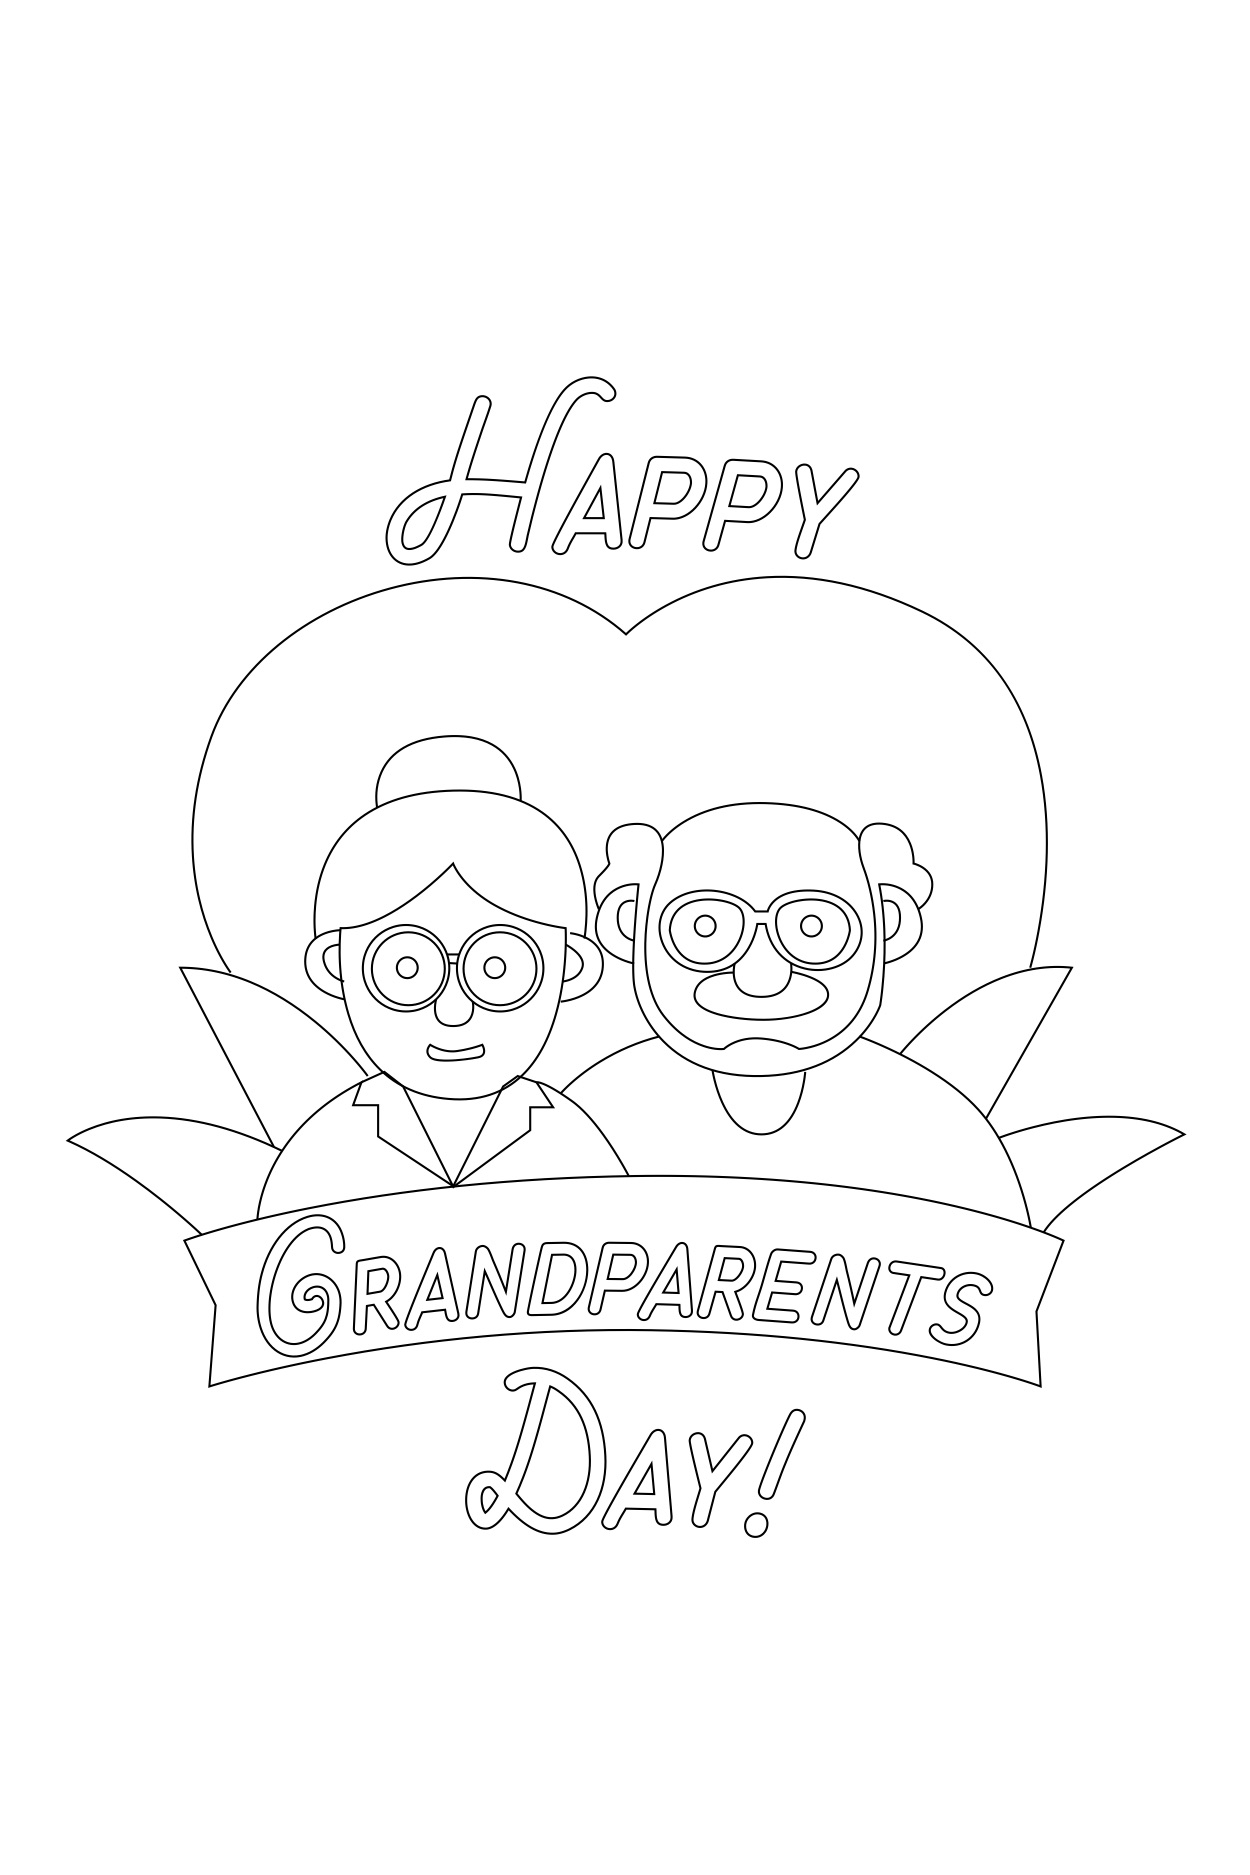 image relating to Grandparents Day Cards Printable known as The Sweetest Grandparents Working day Playing cards for the Great Aged Human beings